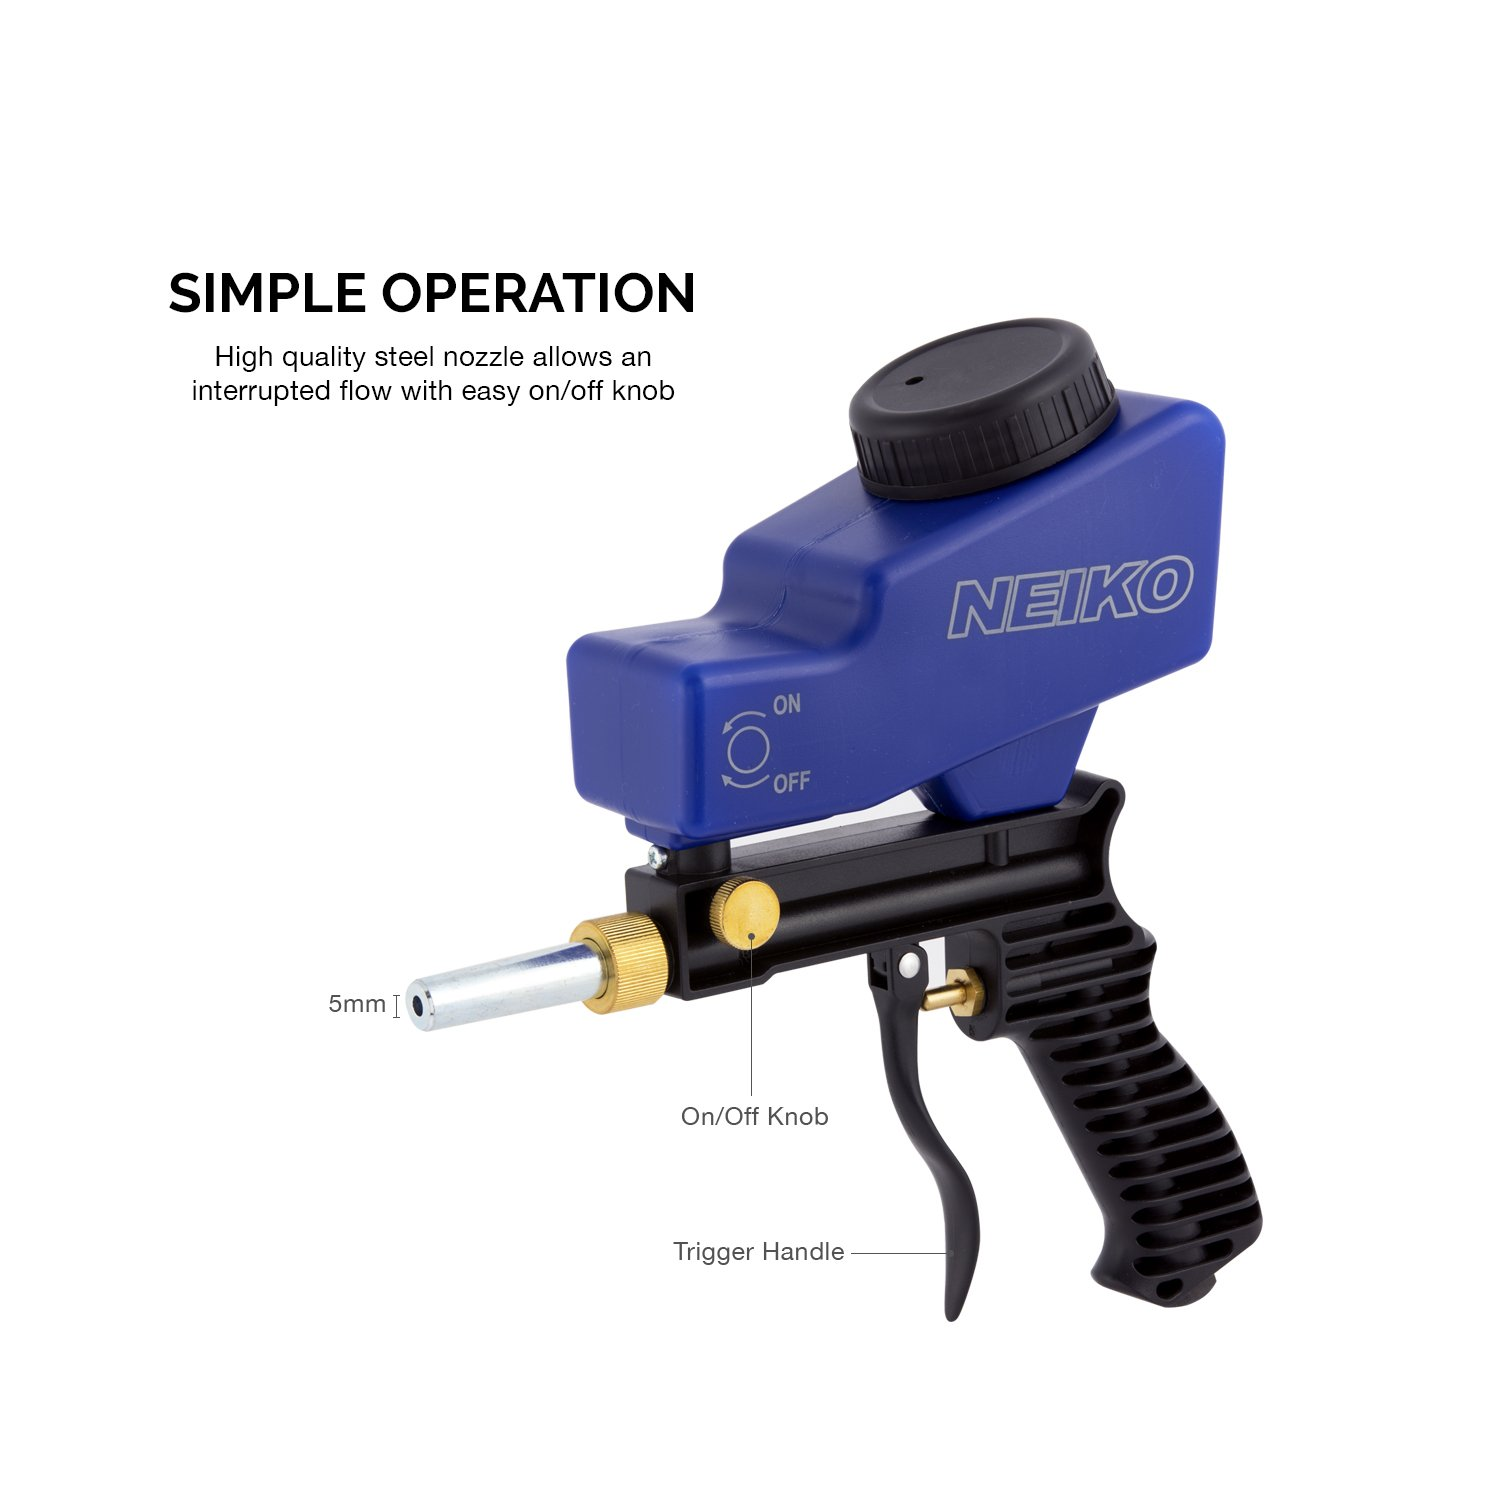 Neiko 30068A Abrasive Air Sand Blaster Handheld Gun   Replaceable Steel Nozzle   Various Media Compatible Gravity Feed Hopper by Neiko (Image #3)